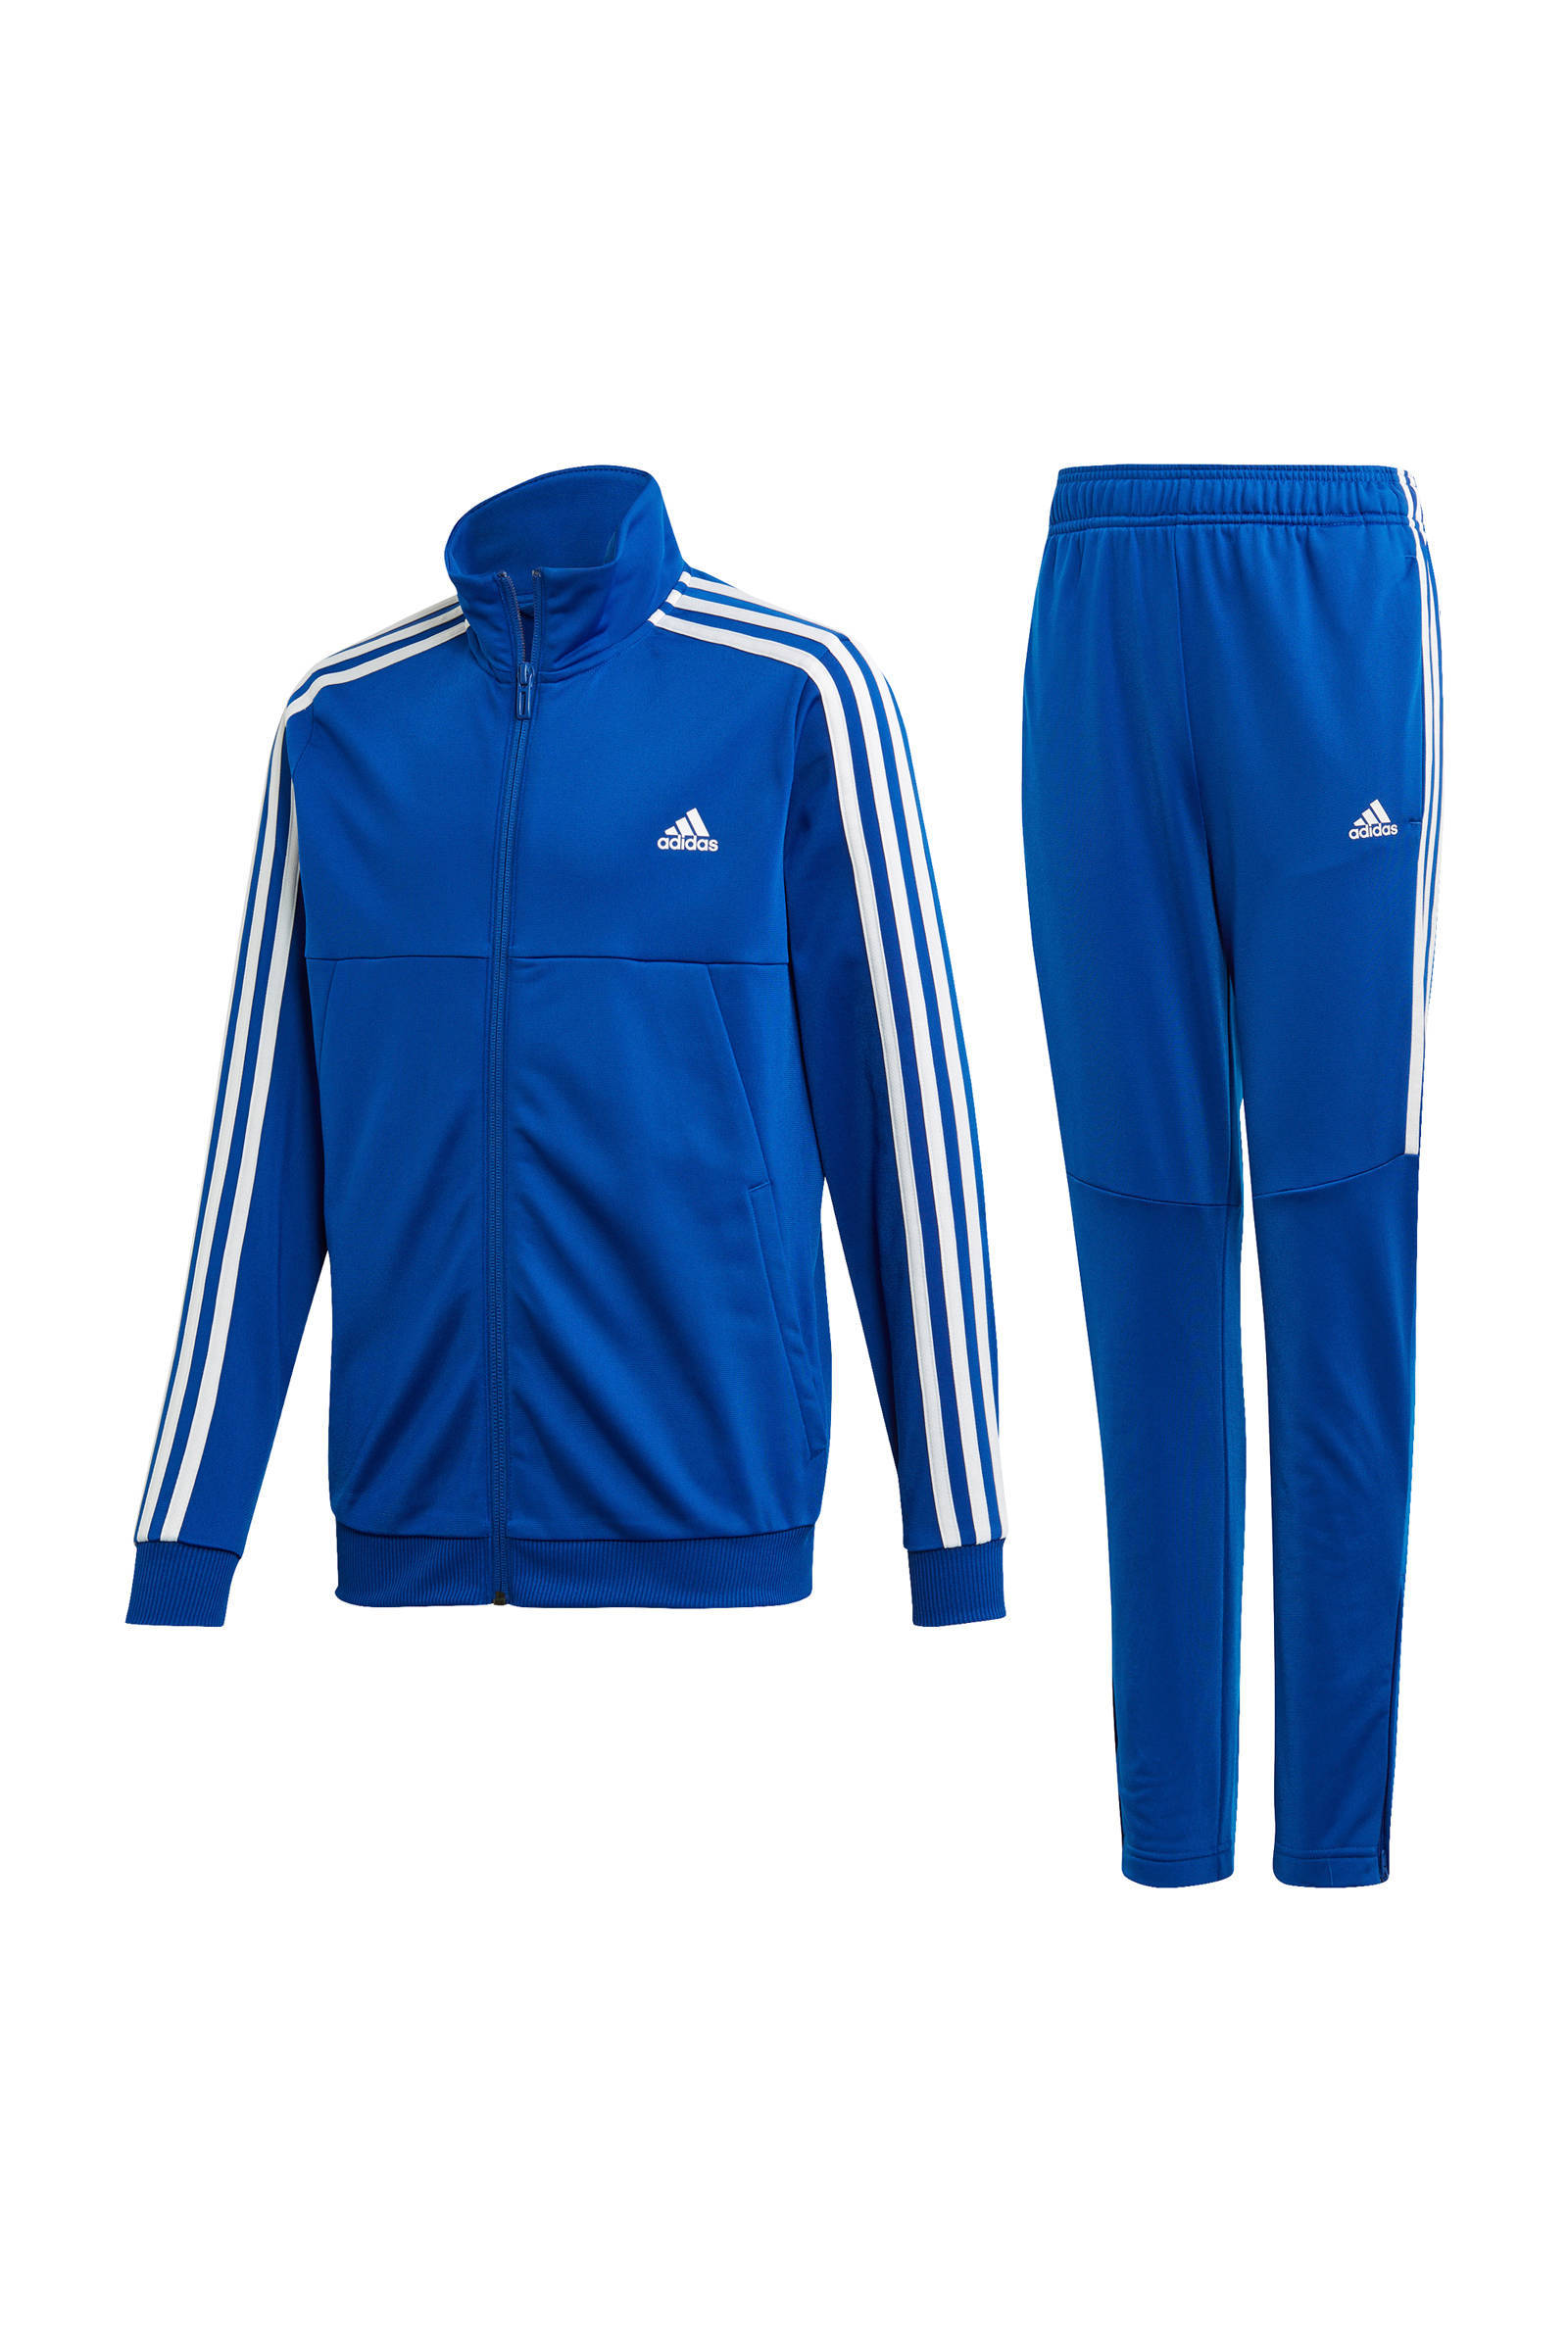 adidas Performance trainingspak blauw | wehkamp